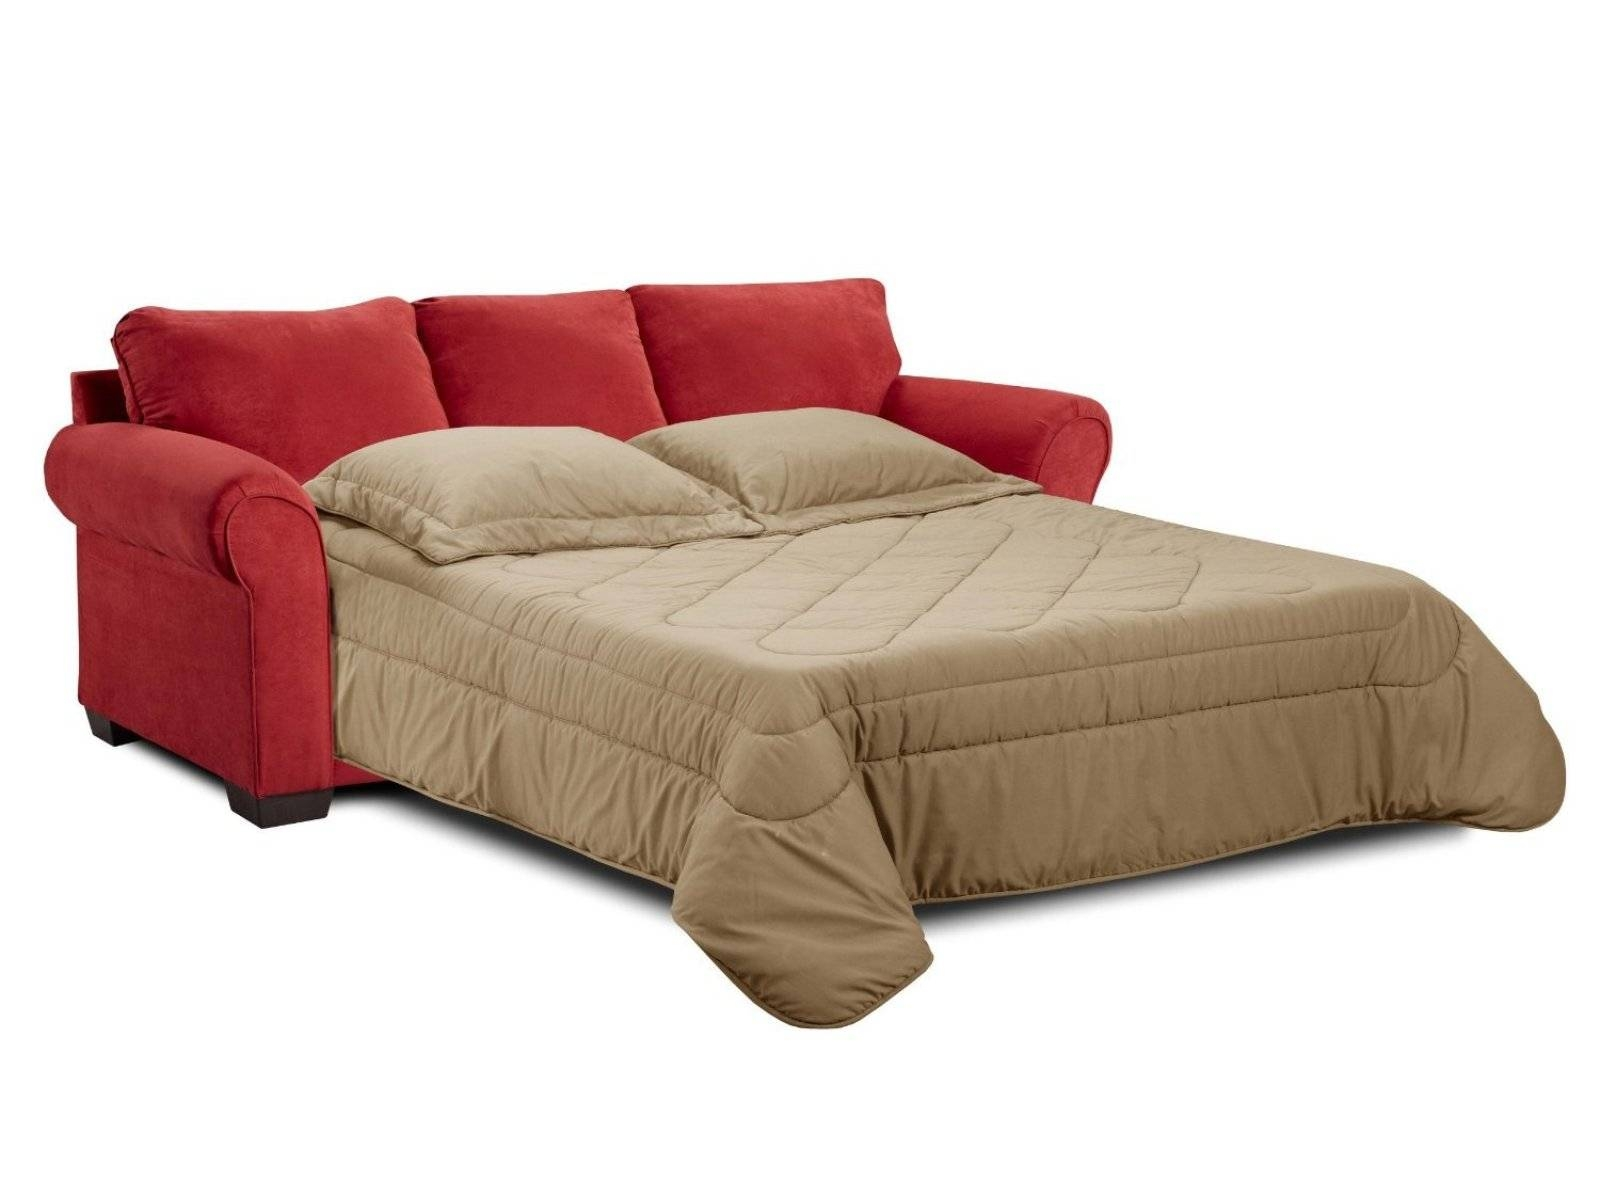 ▻ Sofa : 26 Wonderful Sleeper Sectional Sofa With Chaise Latest With Regard To Sleeper Sectional Sofas (View 30 of 30)